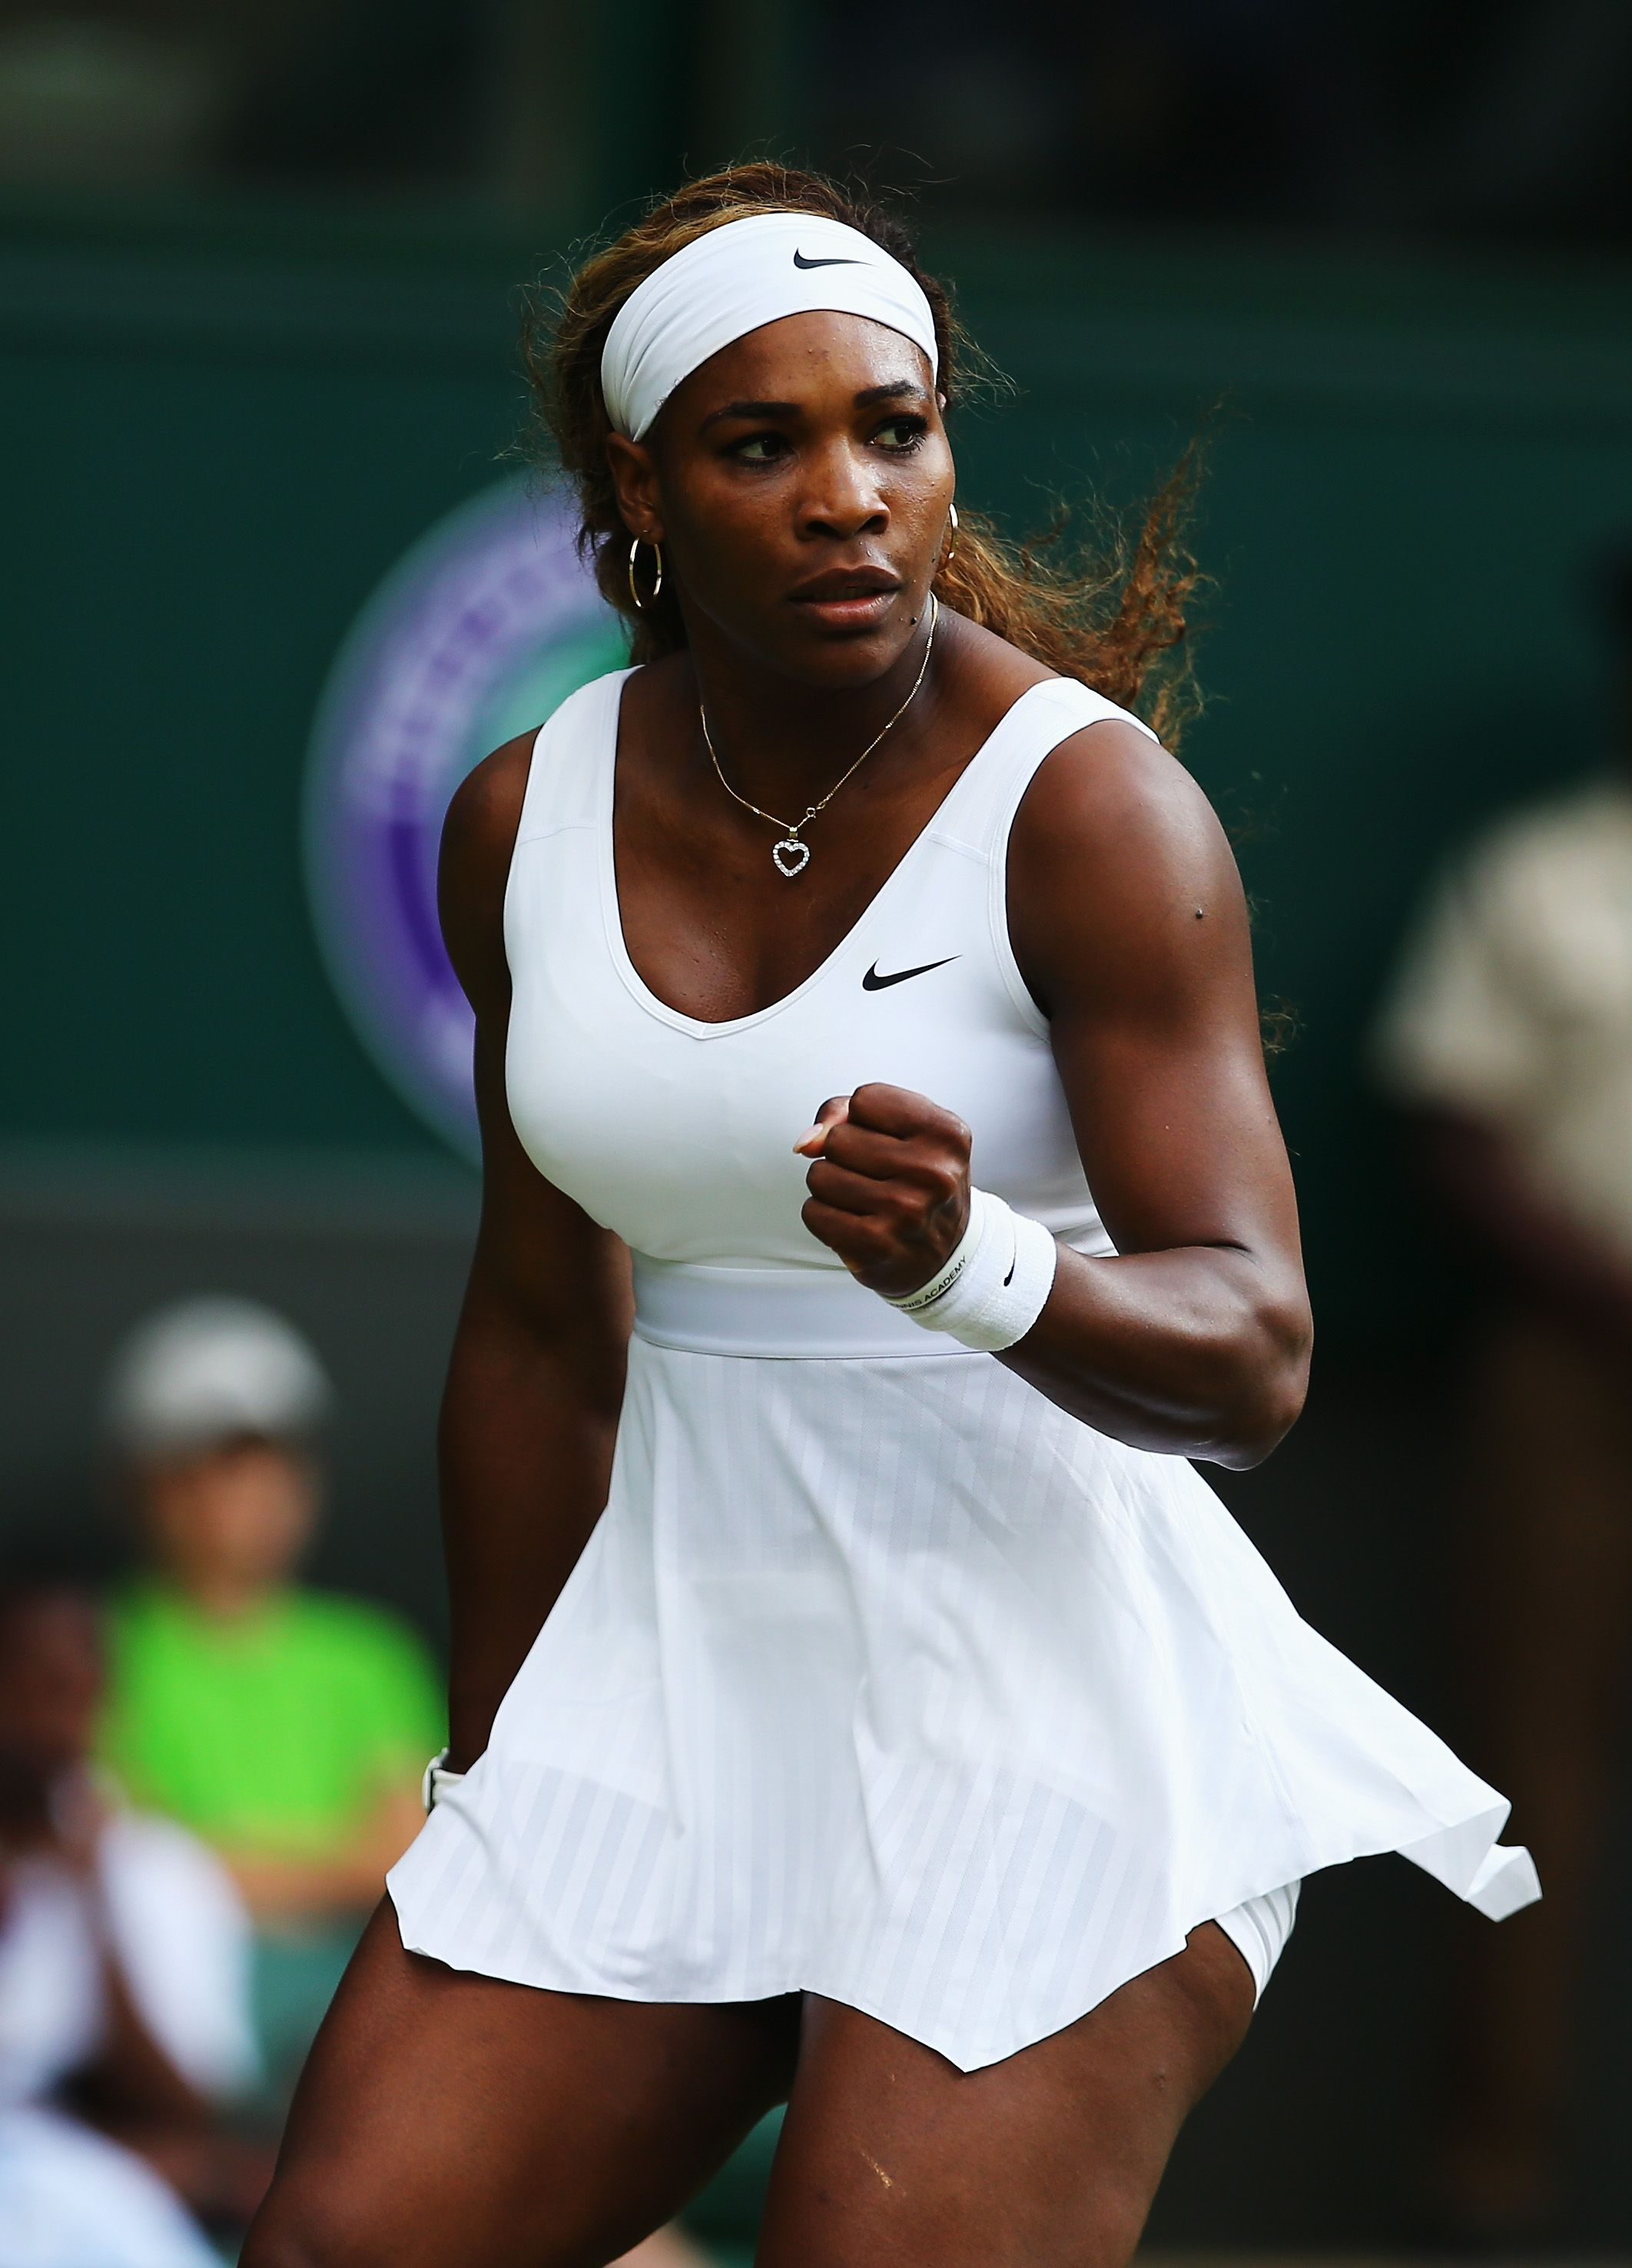 Serena Williams Recovers Her Stolen iPhone in the Most Epic Way